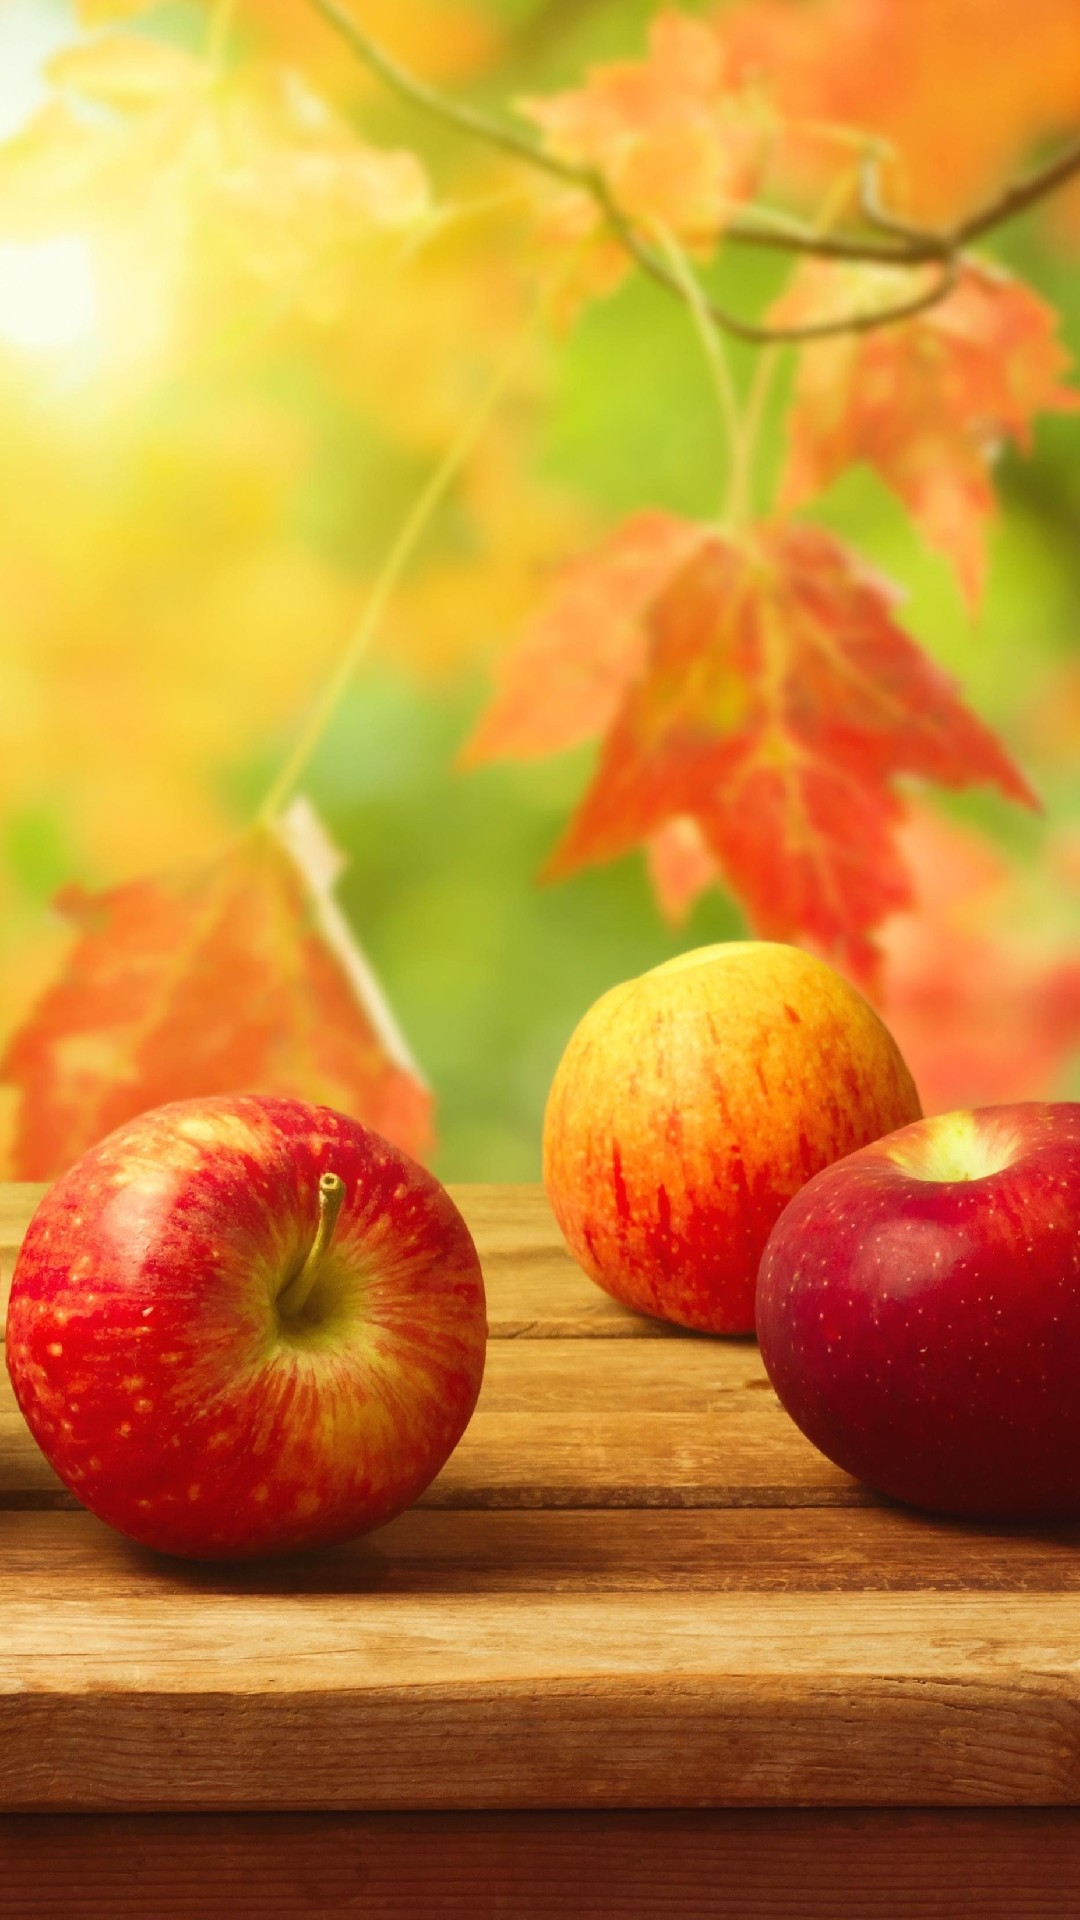 Iphone wallpaper Fall apples on a table …